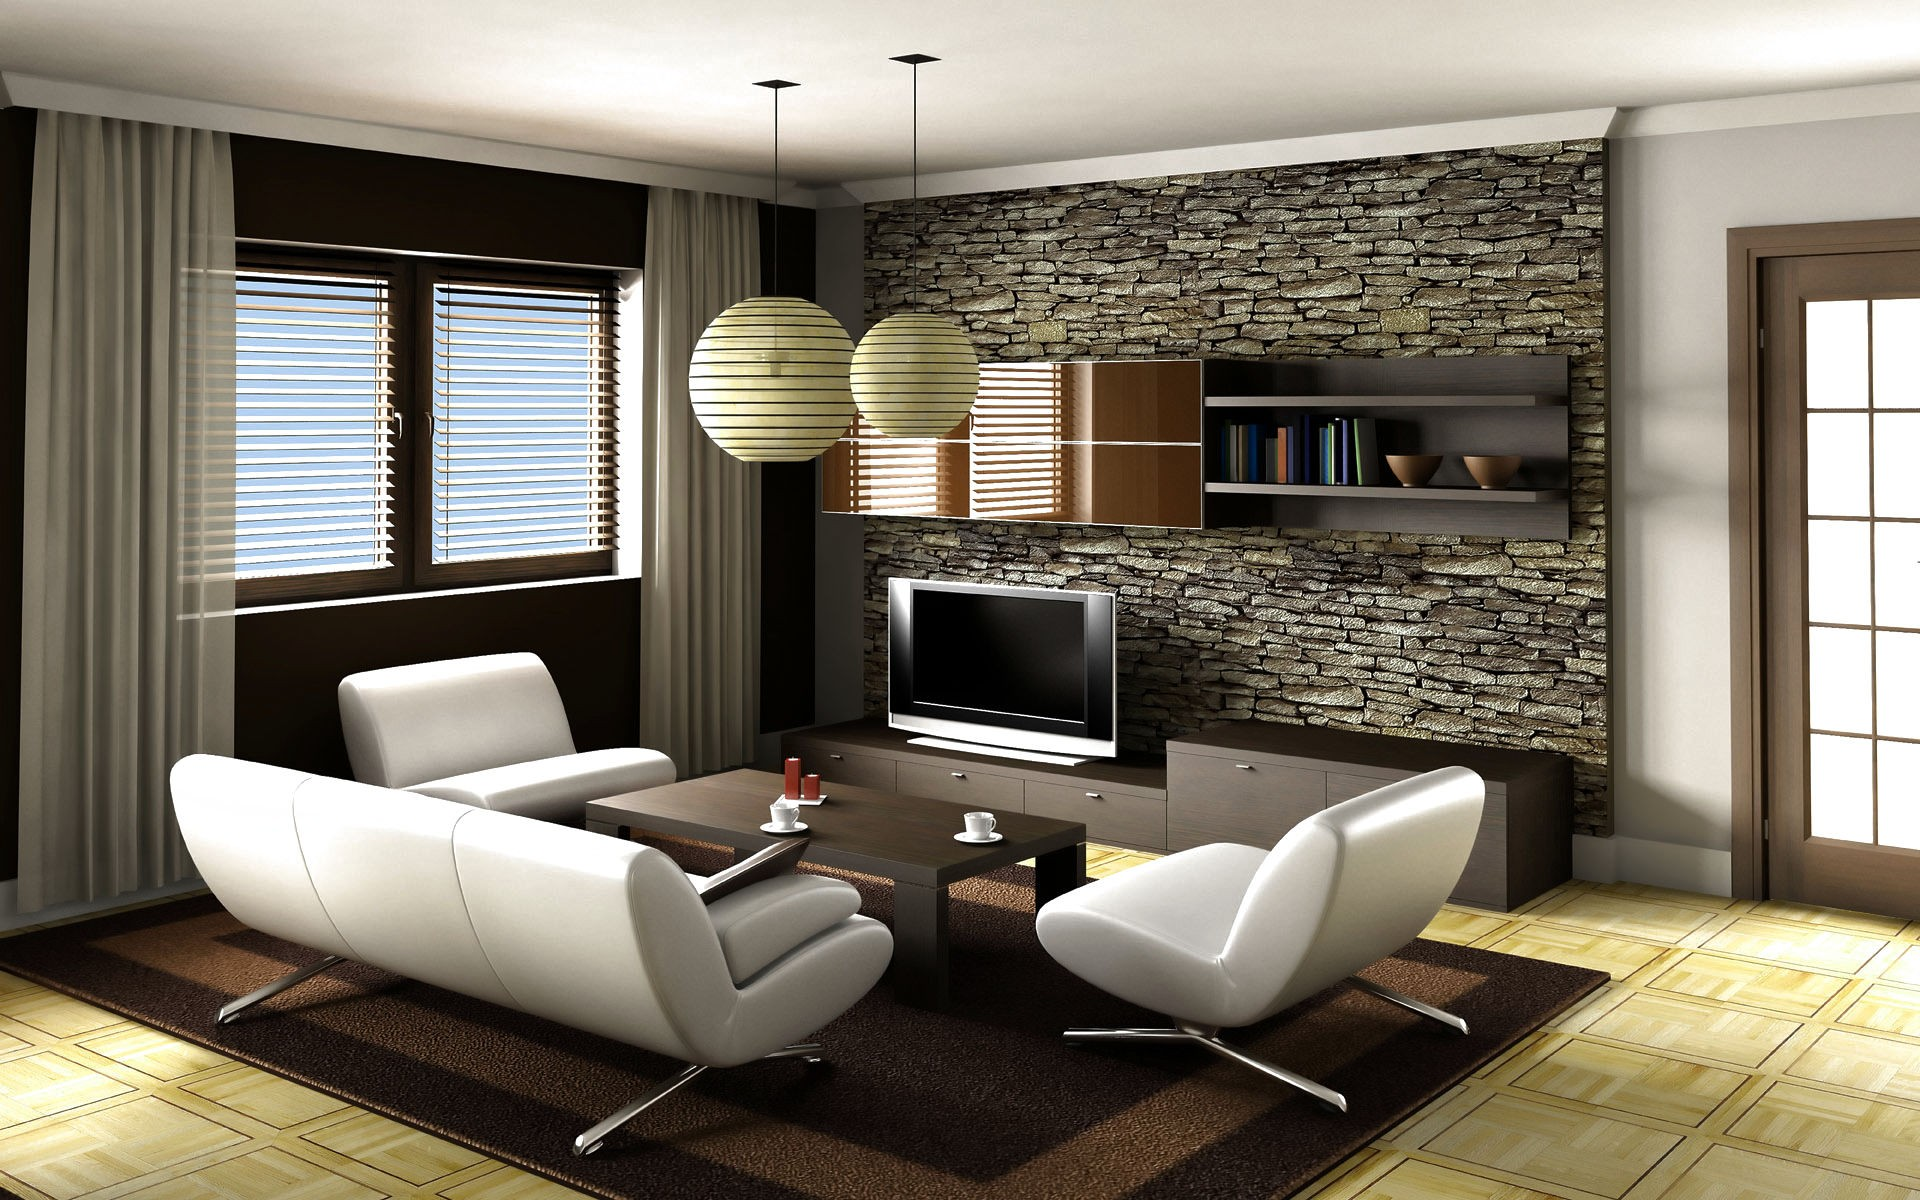 A Living Room Design Home Furniture Design Living Room 7 Bazyetuq Binbambom Info